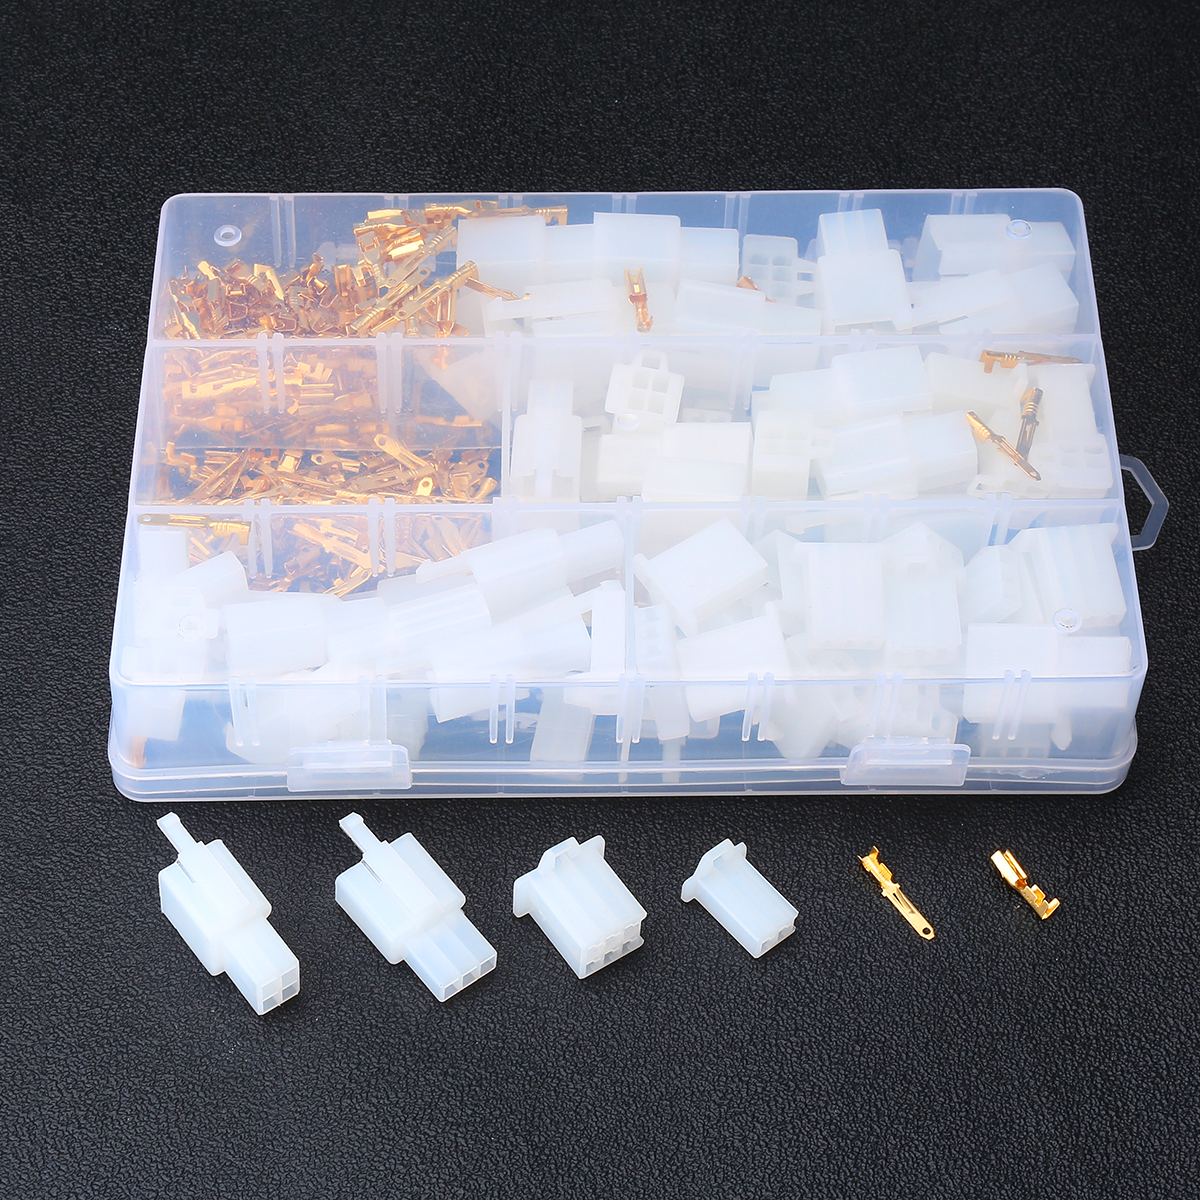 380Pcs 40 Set Auto Electrical Terminal Practical 2.8 Mm 2/3/4/6 Pin Way Cable Wire Connectors Terminals